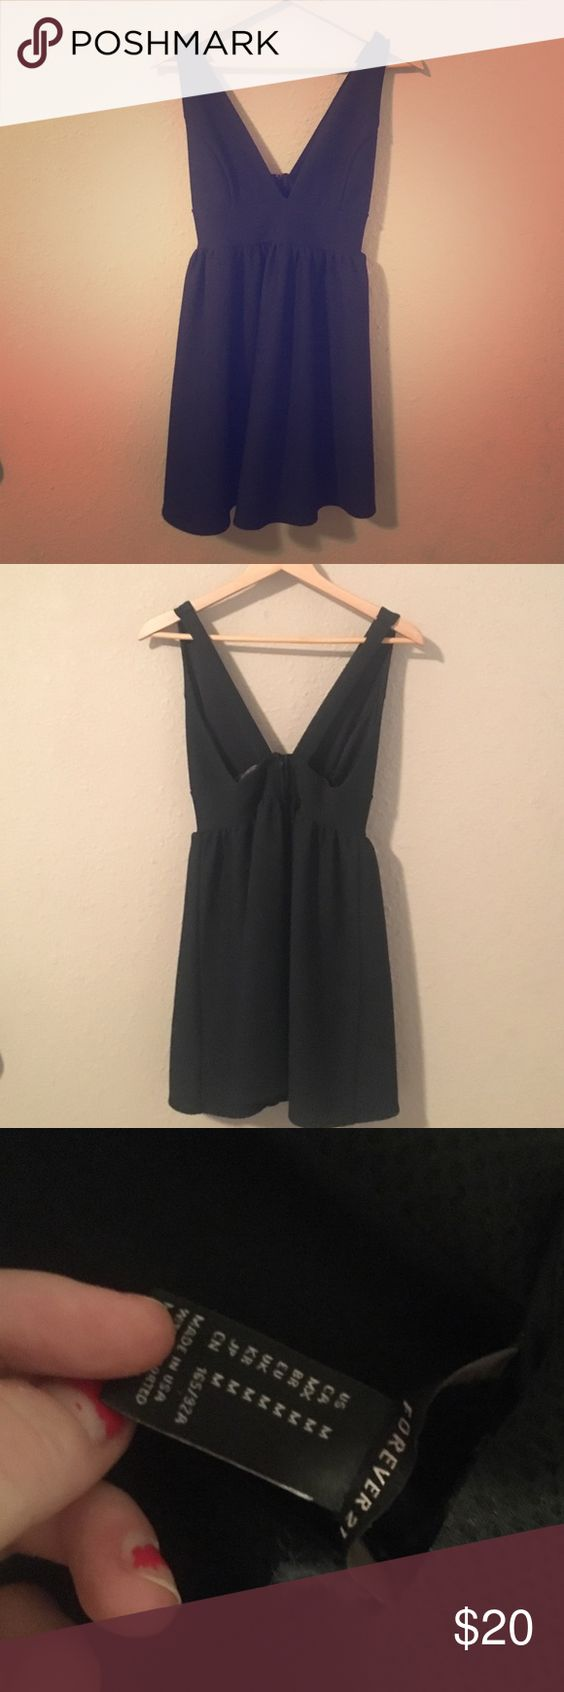 Dressy deep V going out dress GREAT quality. The material is thick enough to skip the bra. Very low V cut though so it's pretty reviling. Forever 21 Dresses Mini